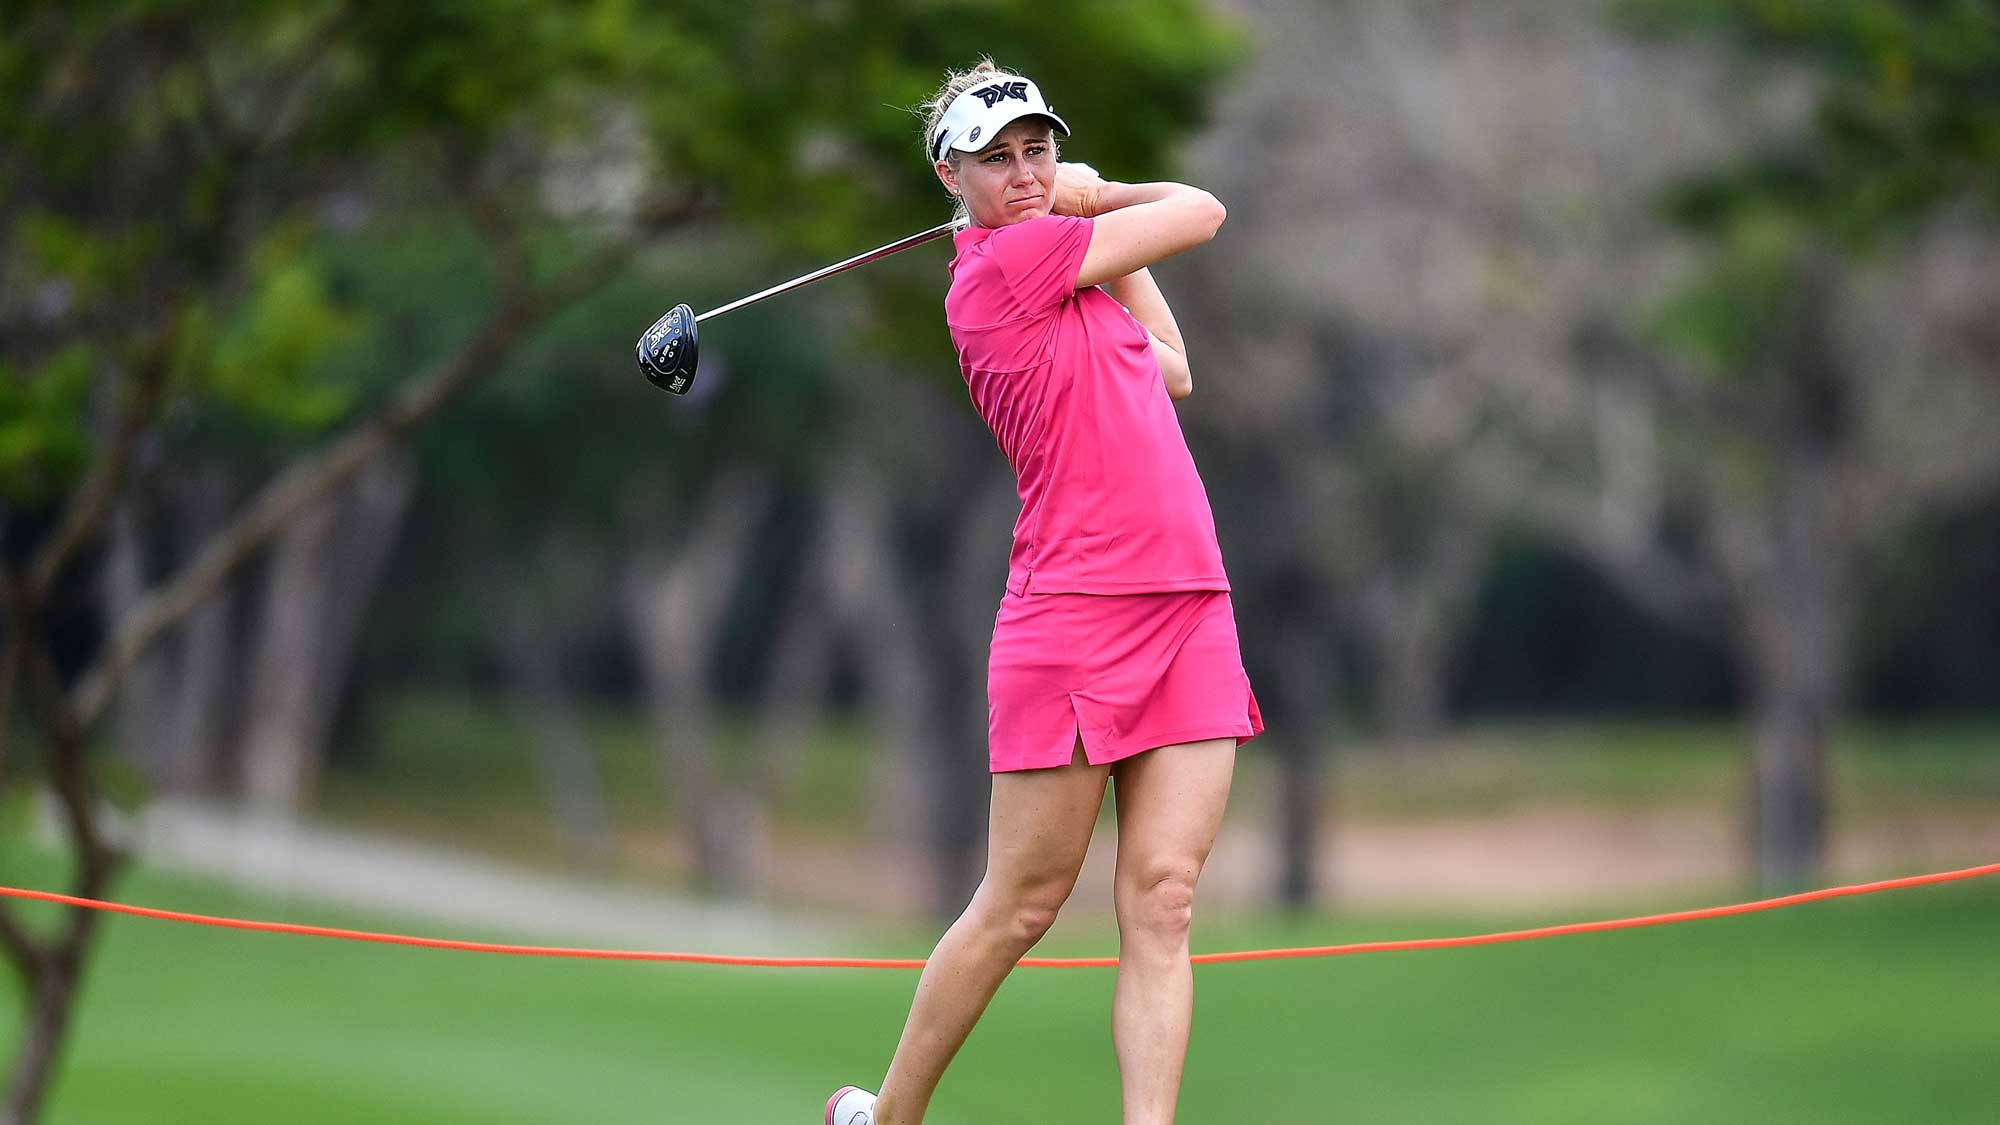 Ryann O'Toole of United States plays a shot during round one of the Honda LPGA Thailand